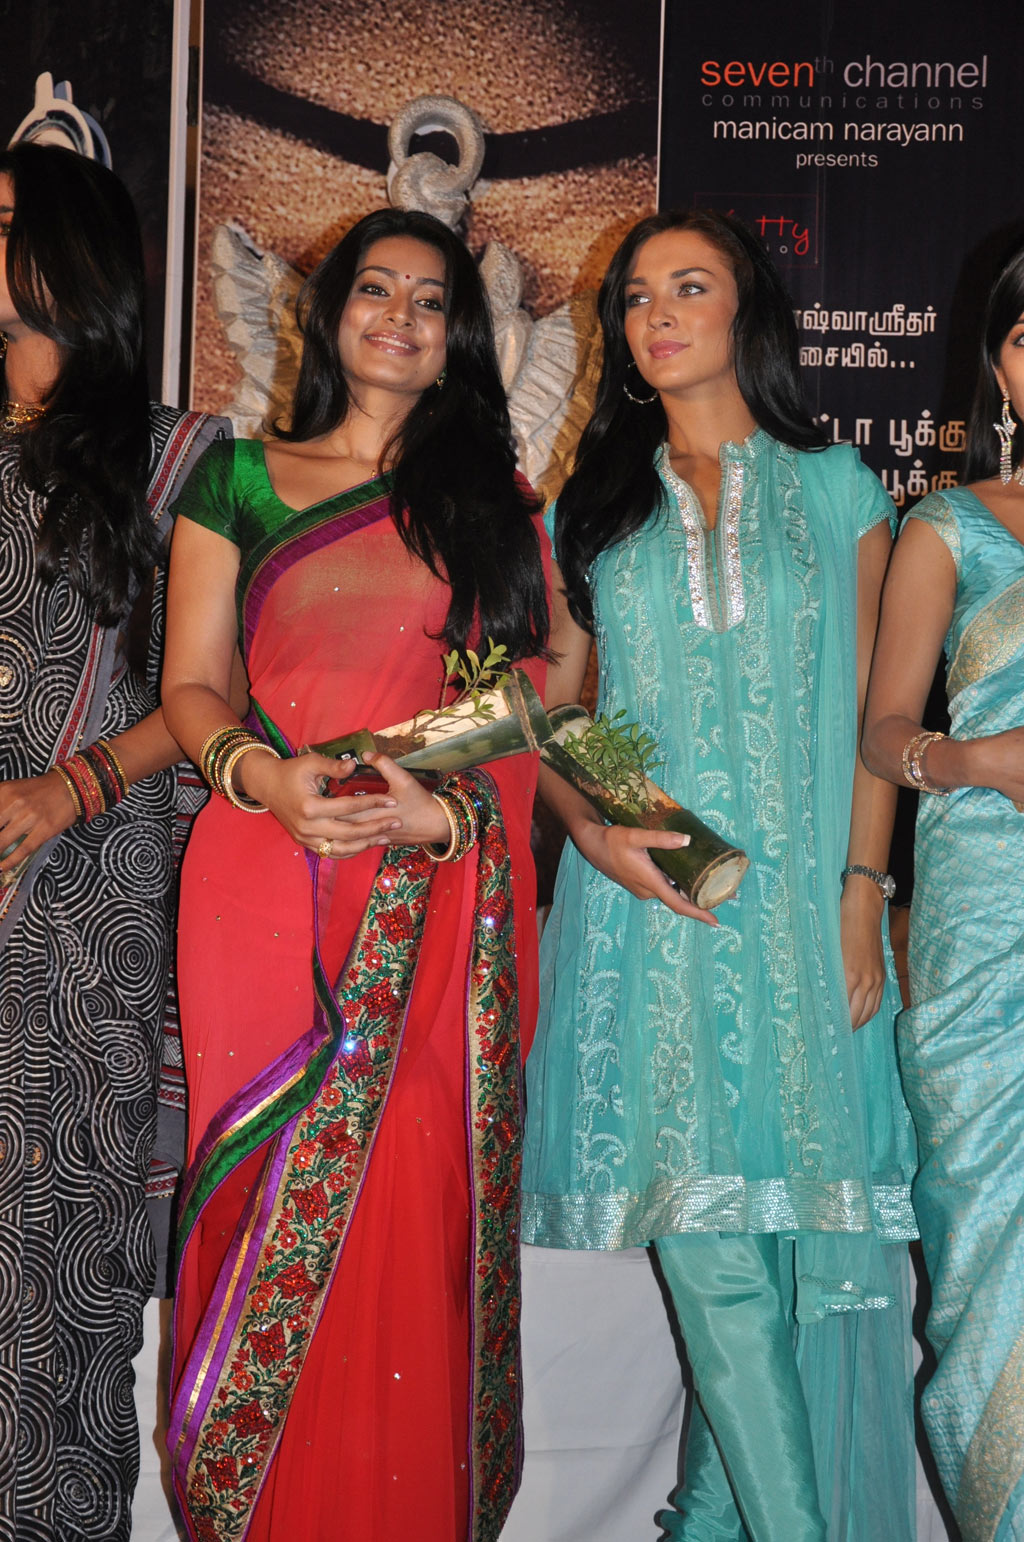 viththagan movie audio launch event unseen pics